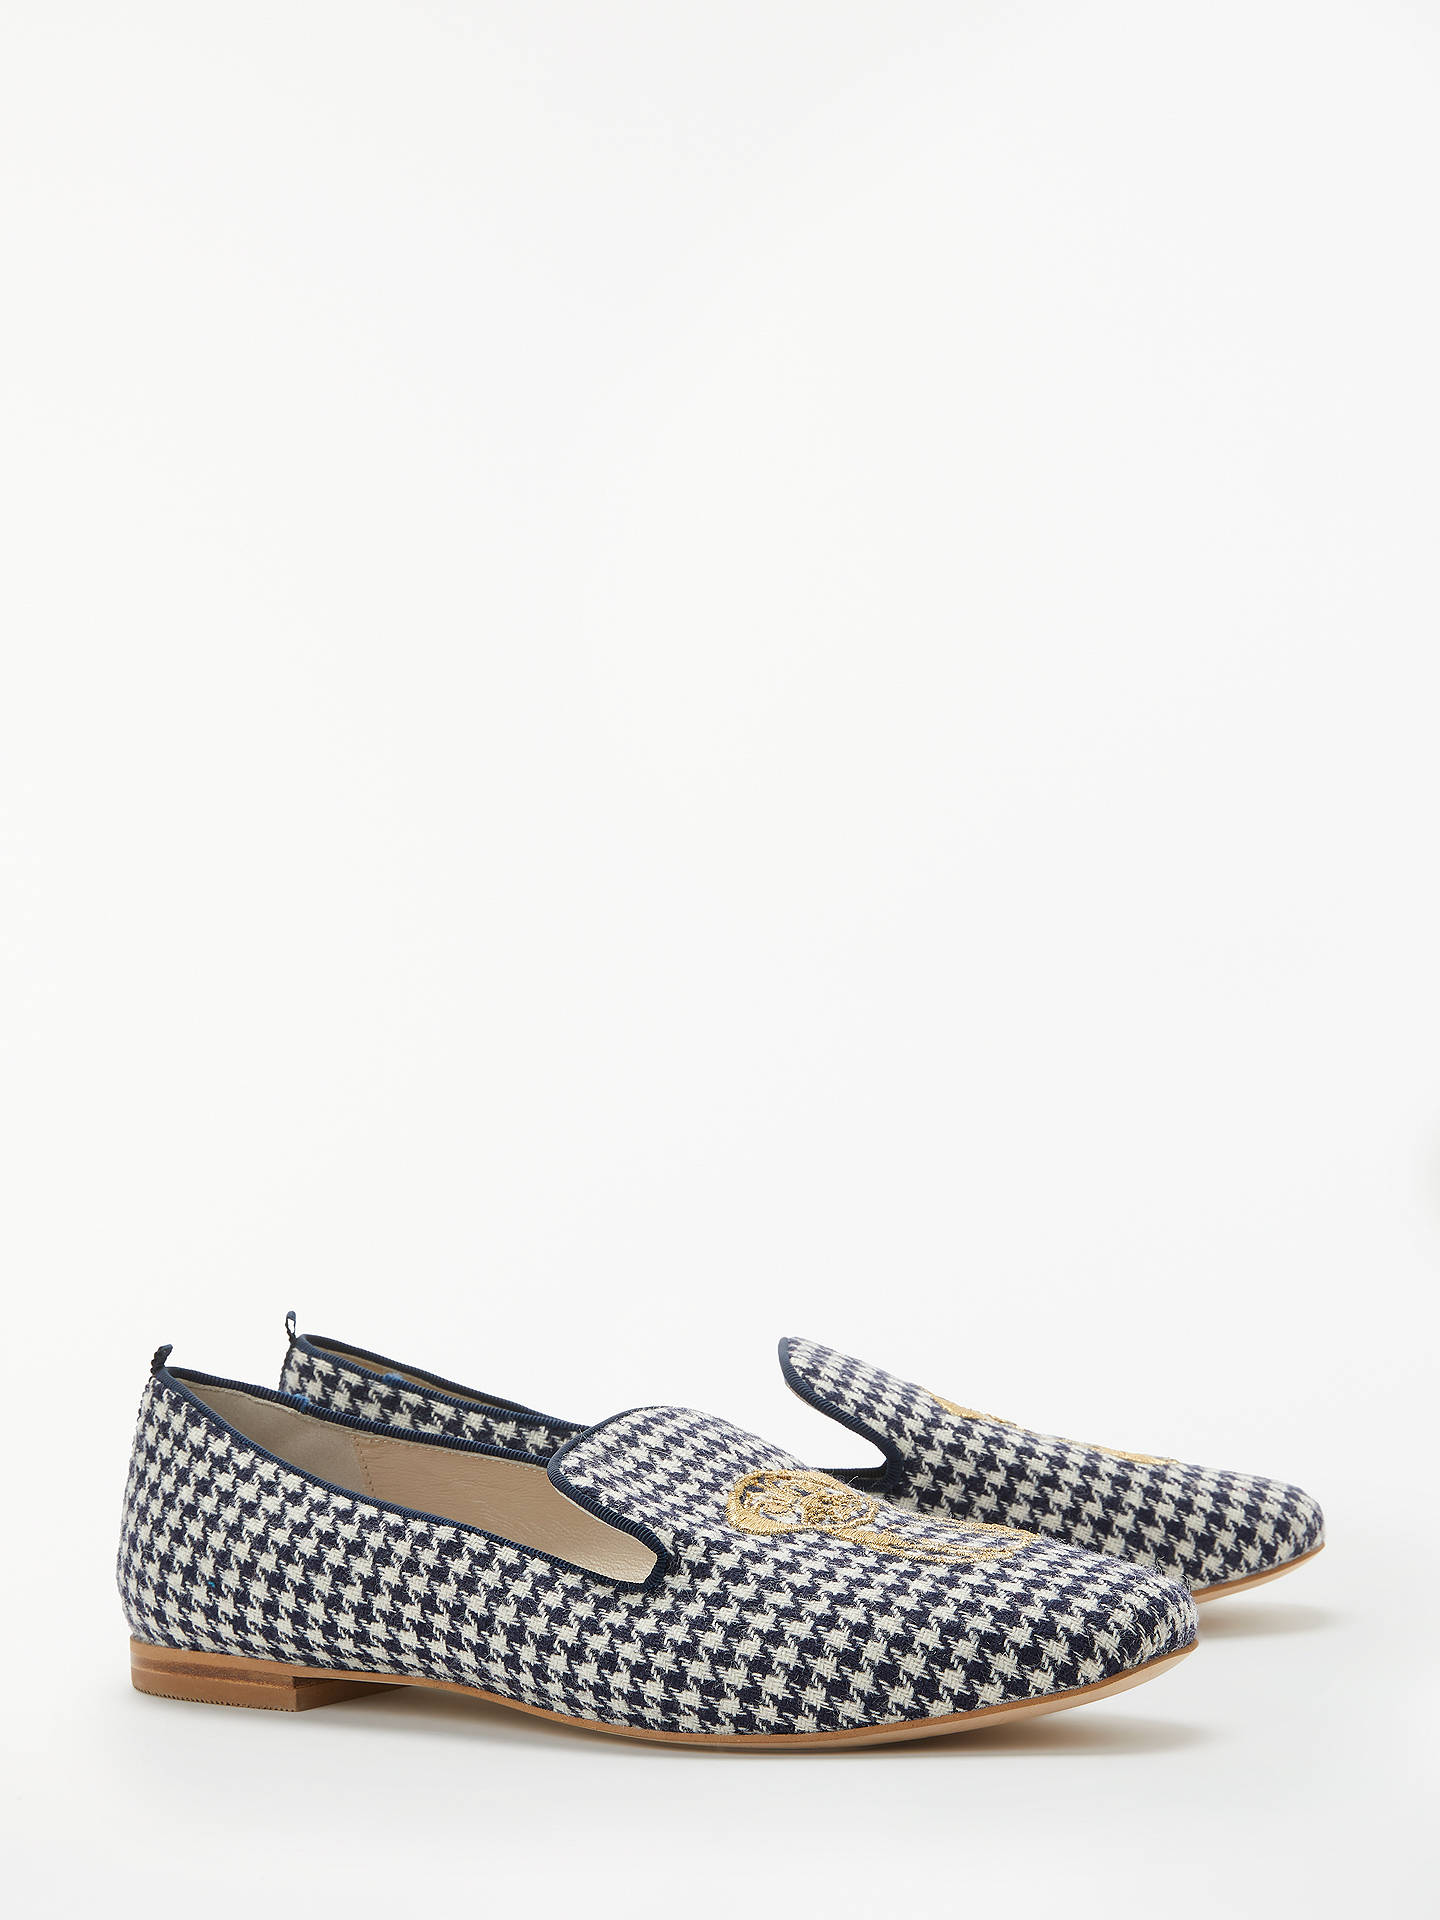 Buy Boden Elsie Embroidered Slipper Loafers, Navy/Ivory Dogtooth, 4 Online at johnlewis.com